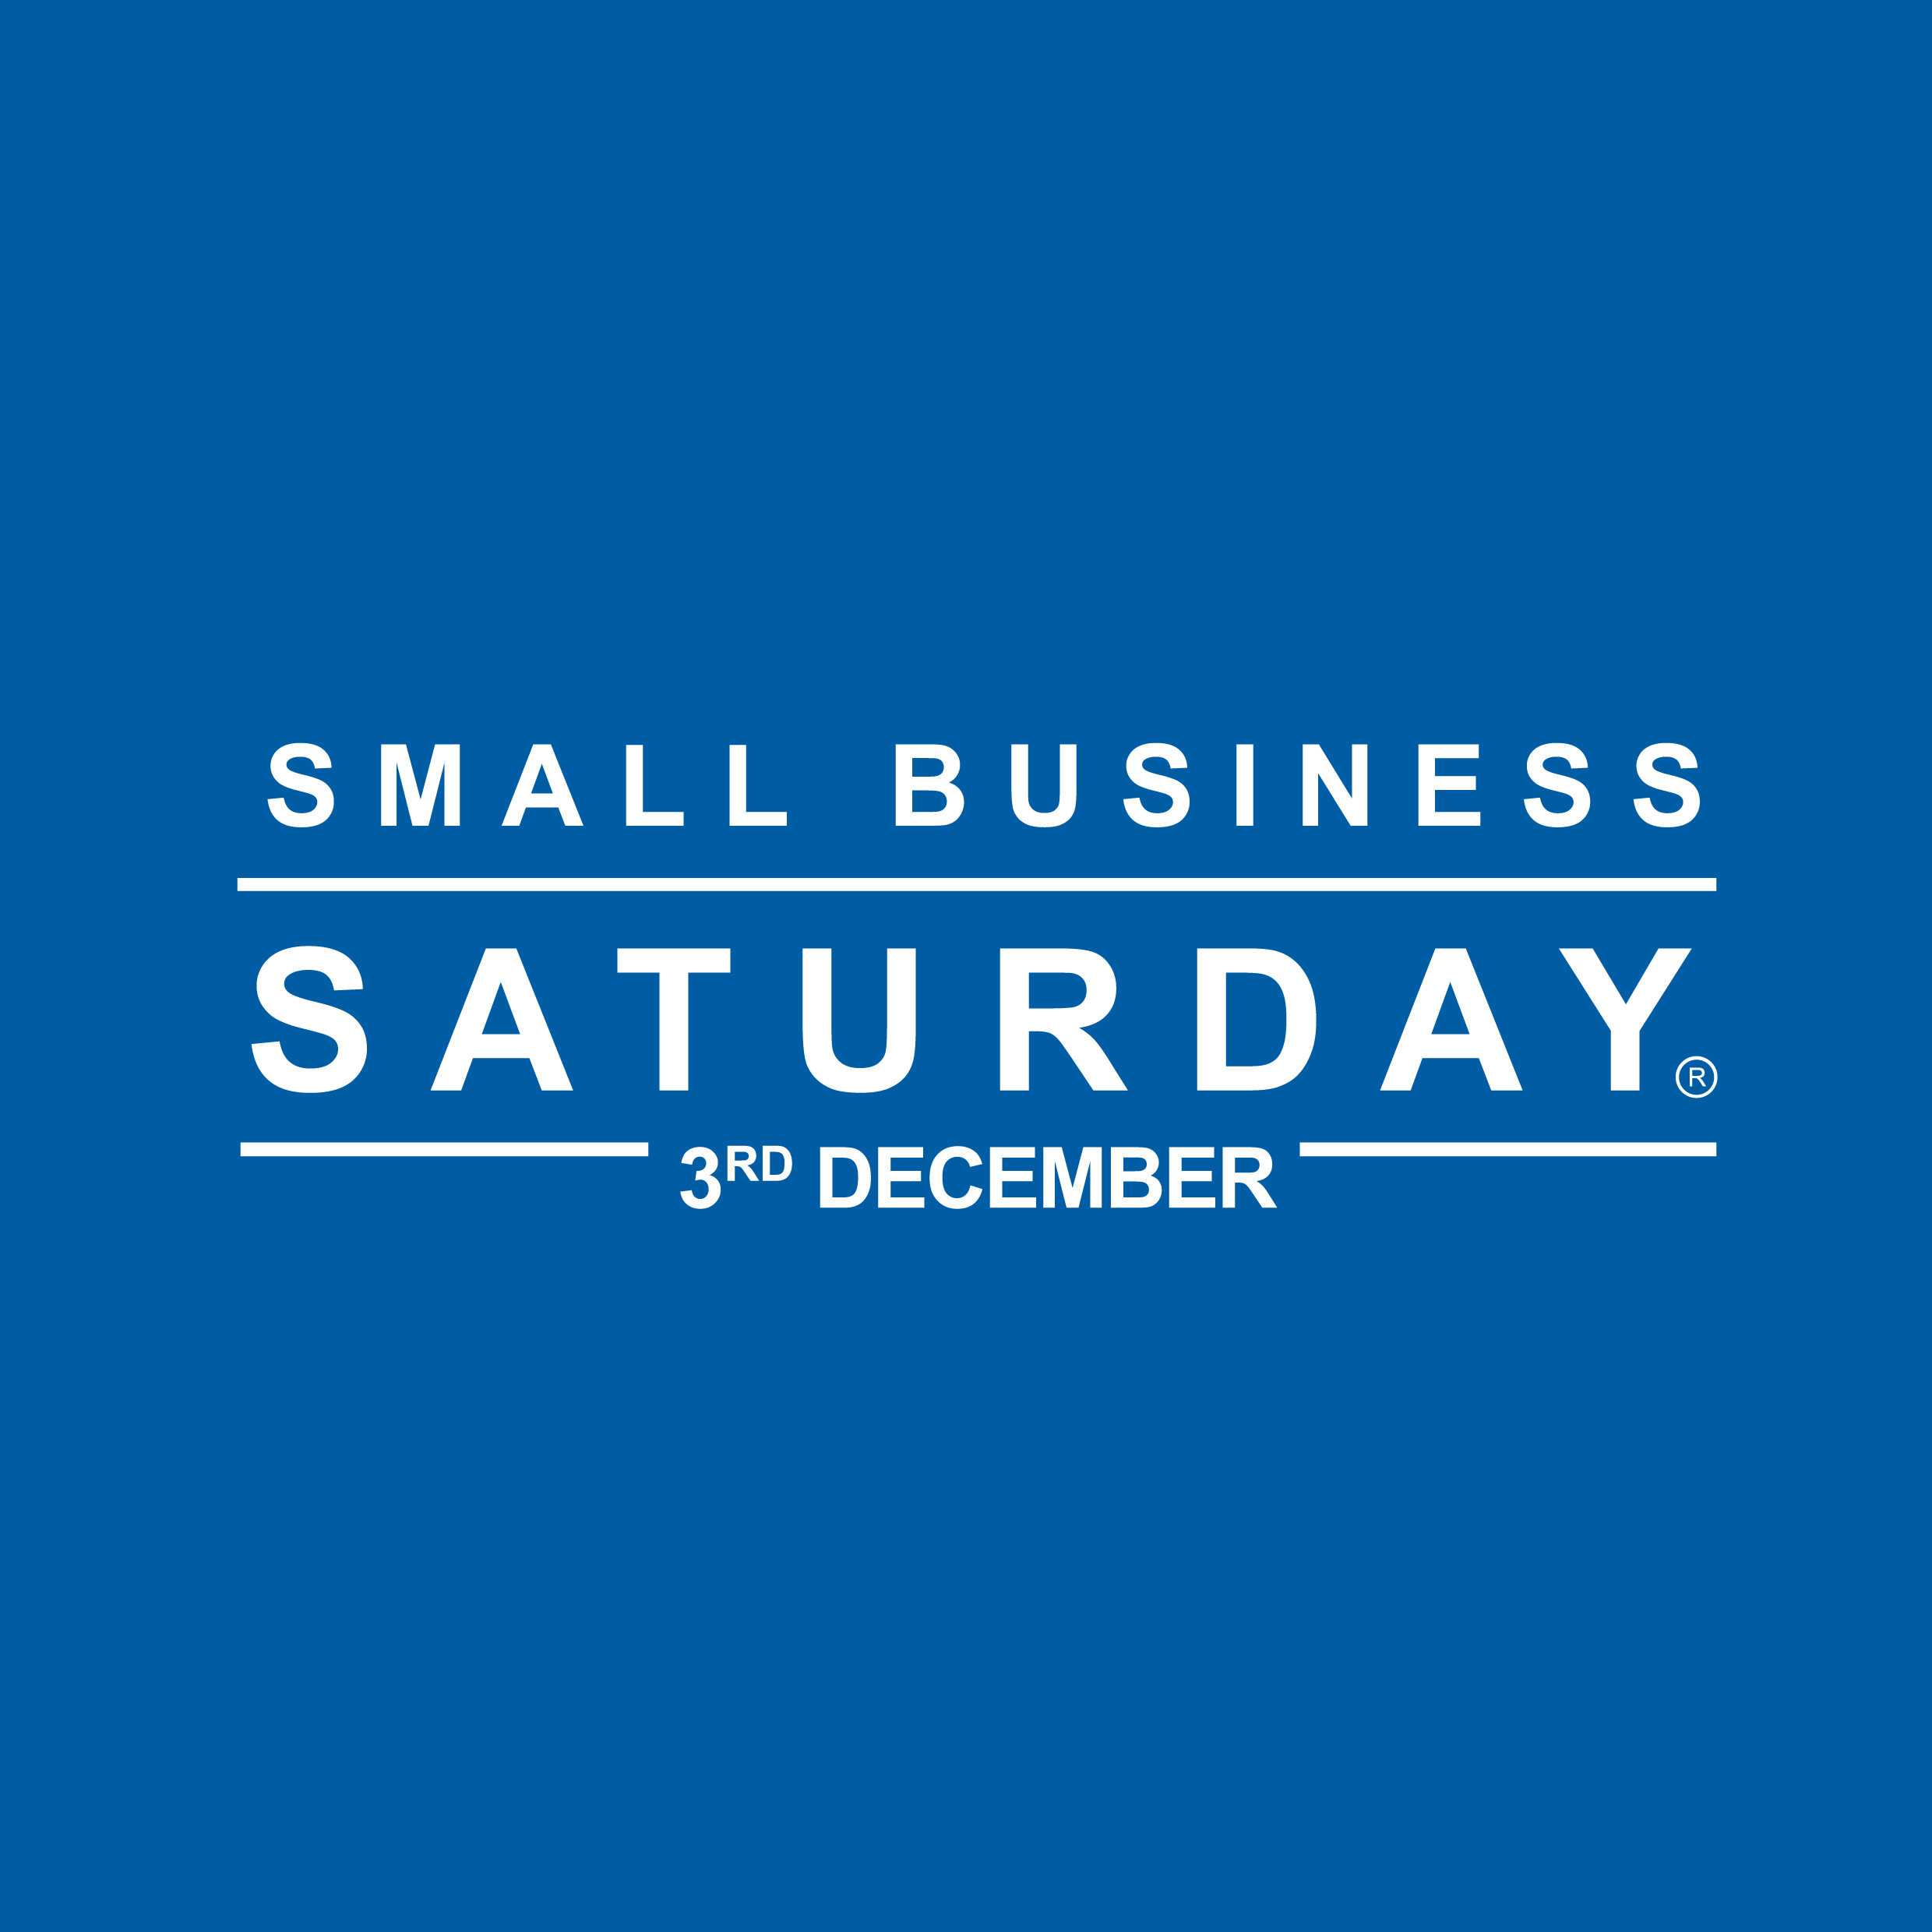 Small-Business-Saturday-UK-Logo-2016-Blue-Hi-Res.jpg